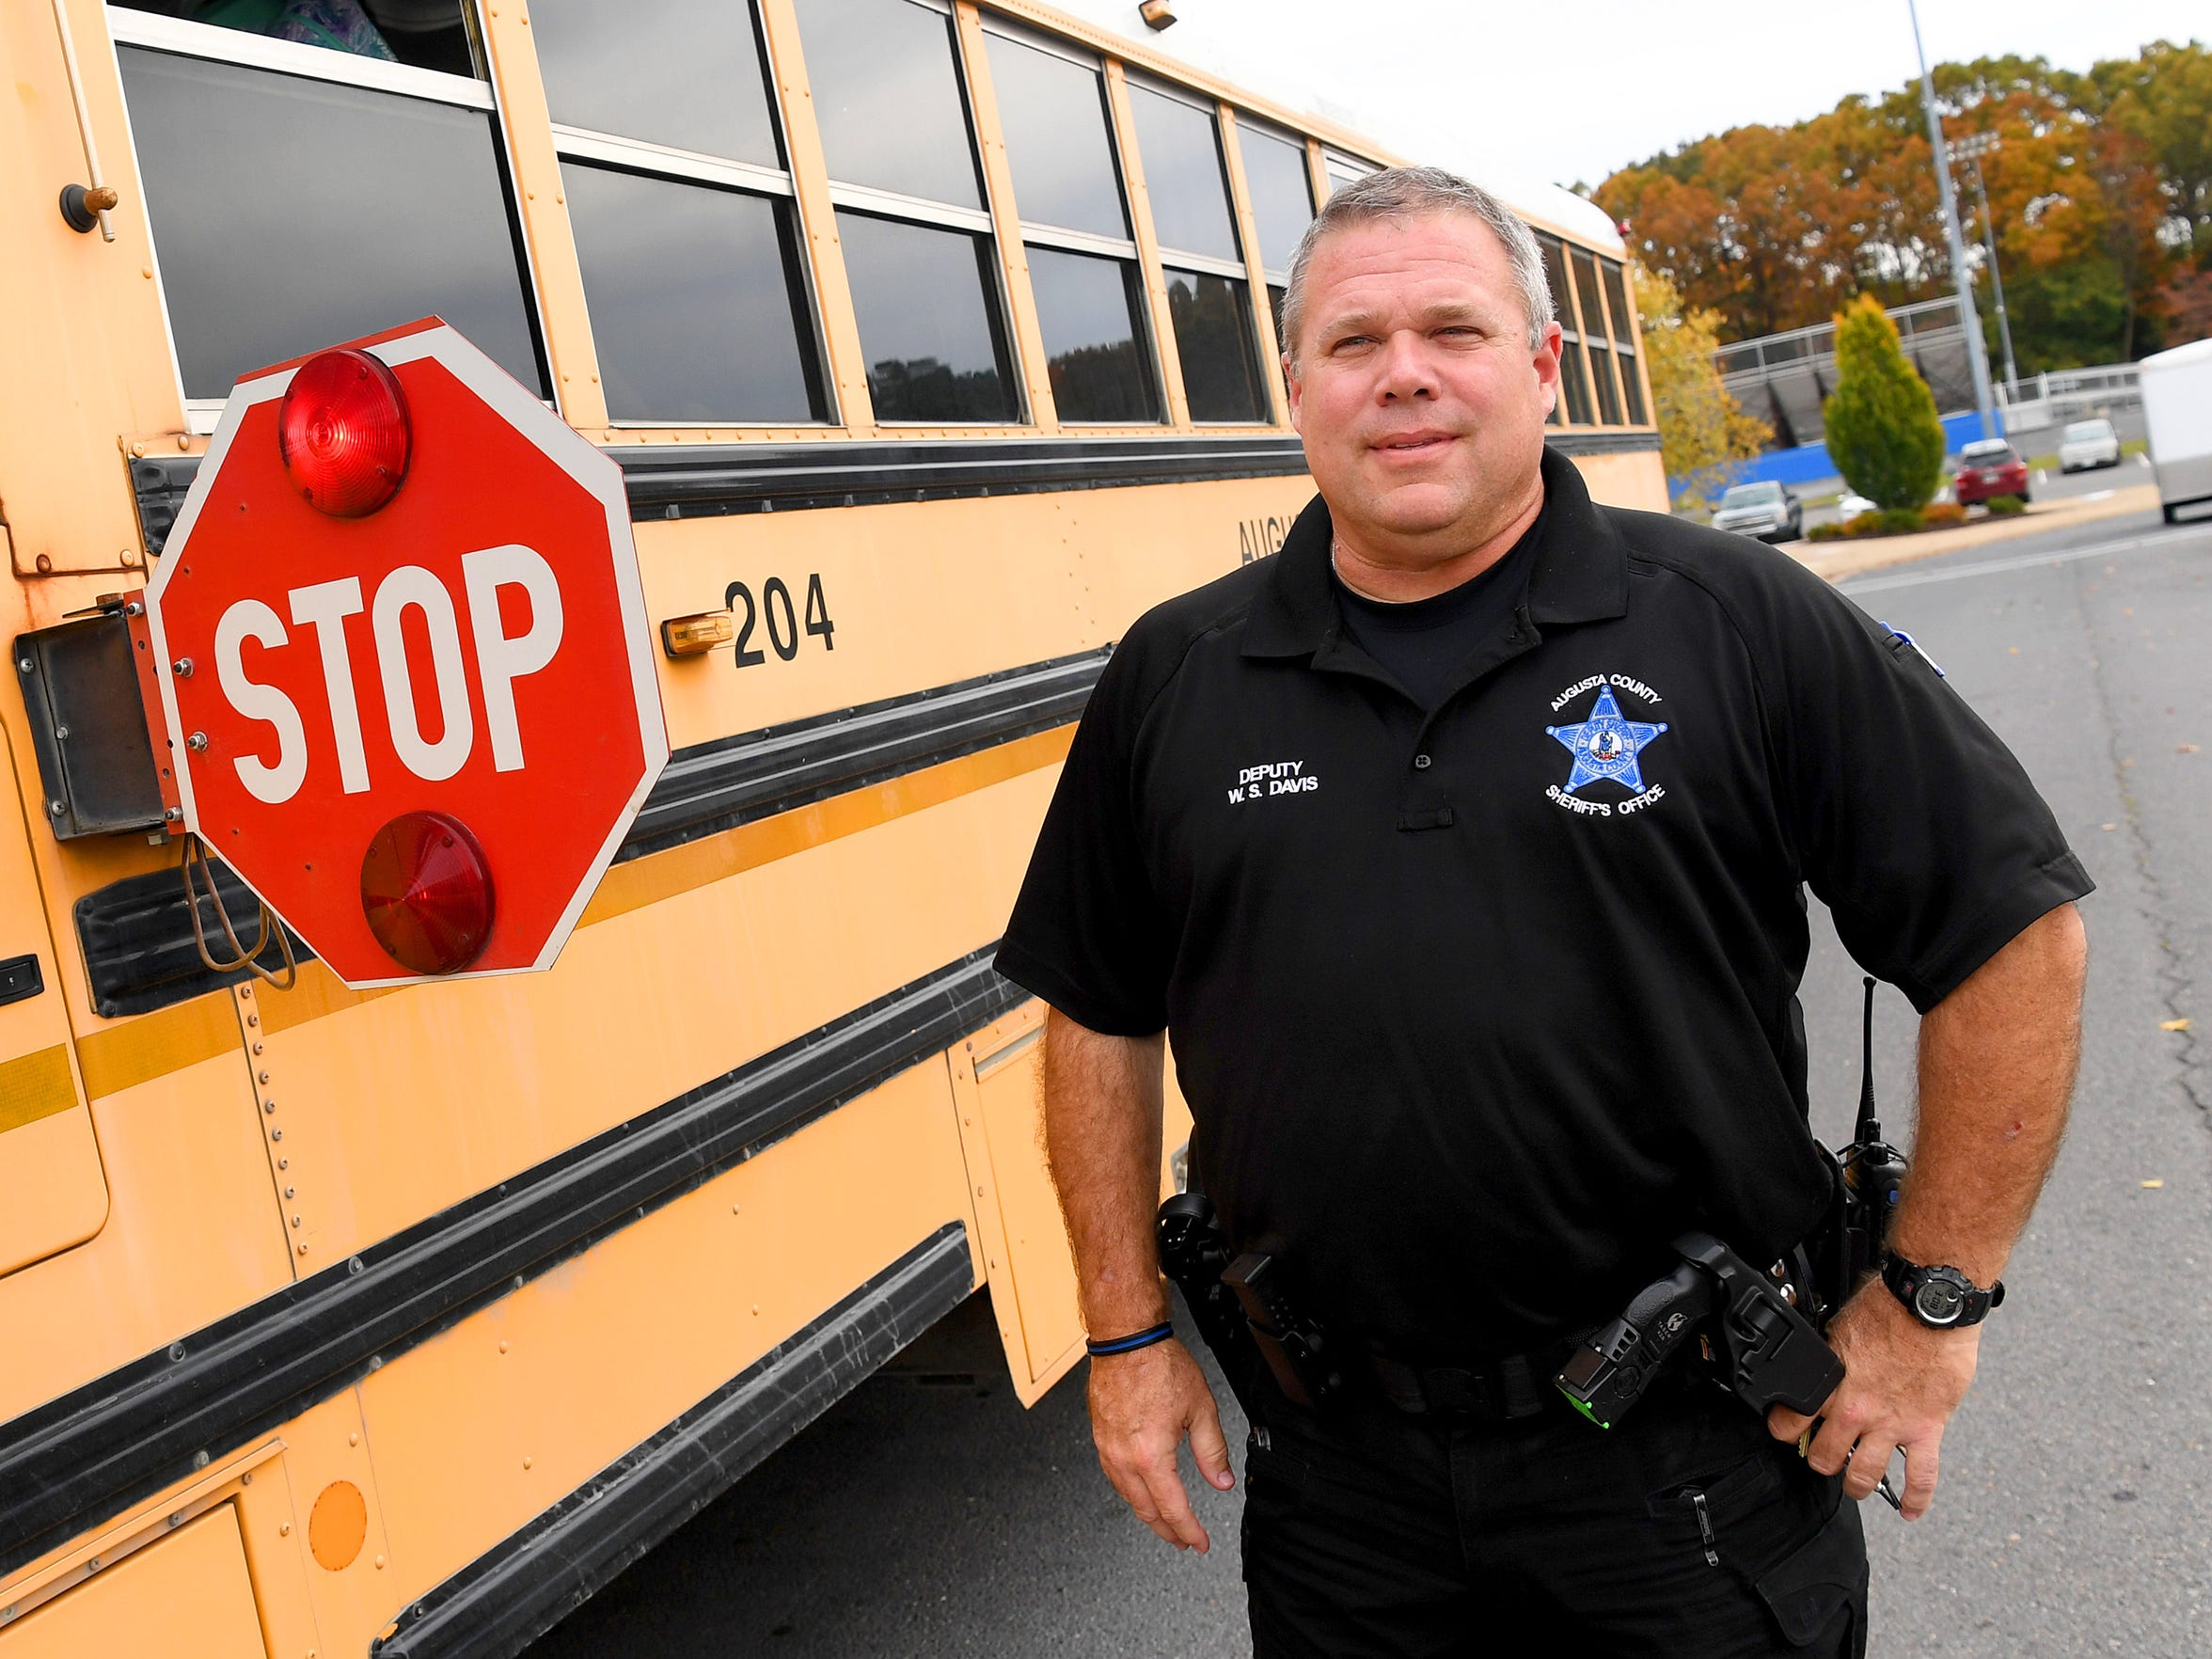 Deputy Steve Davis of the Augusta County Sheriff's Office has handed out over 100 tickets related to drivers failing to stop for a stopped school bus. He is photographed alongside a school bus at Fort Defiance High School on Thursday afternoon, Nov. 1, 2018.